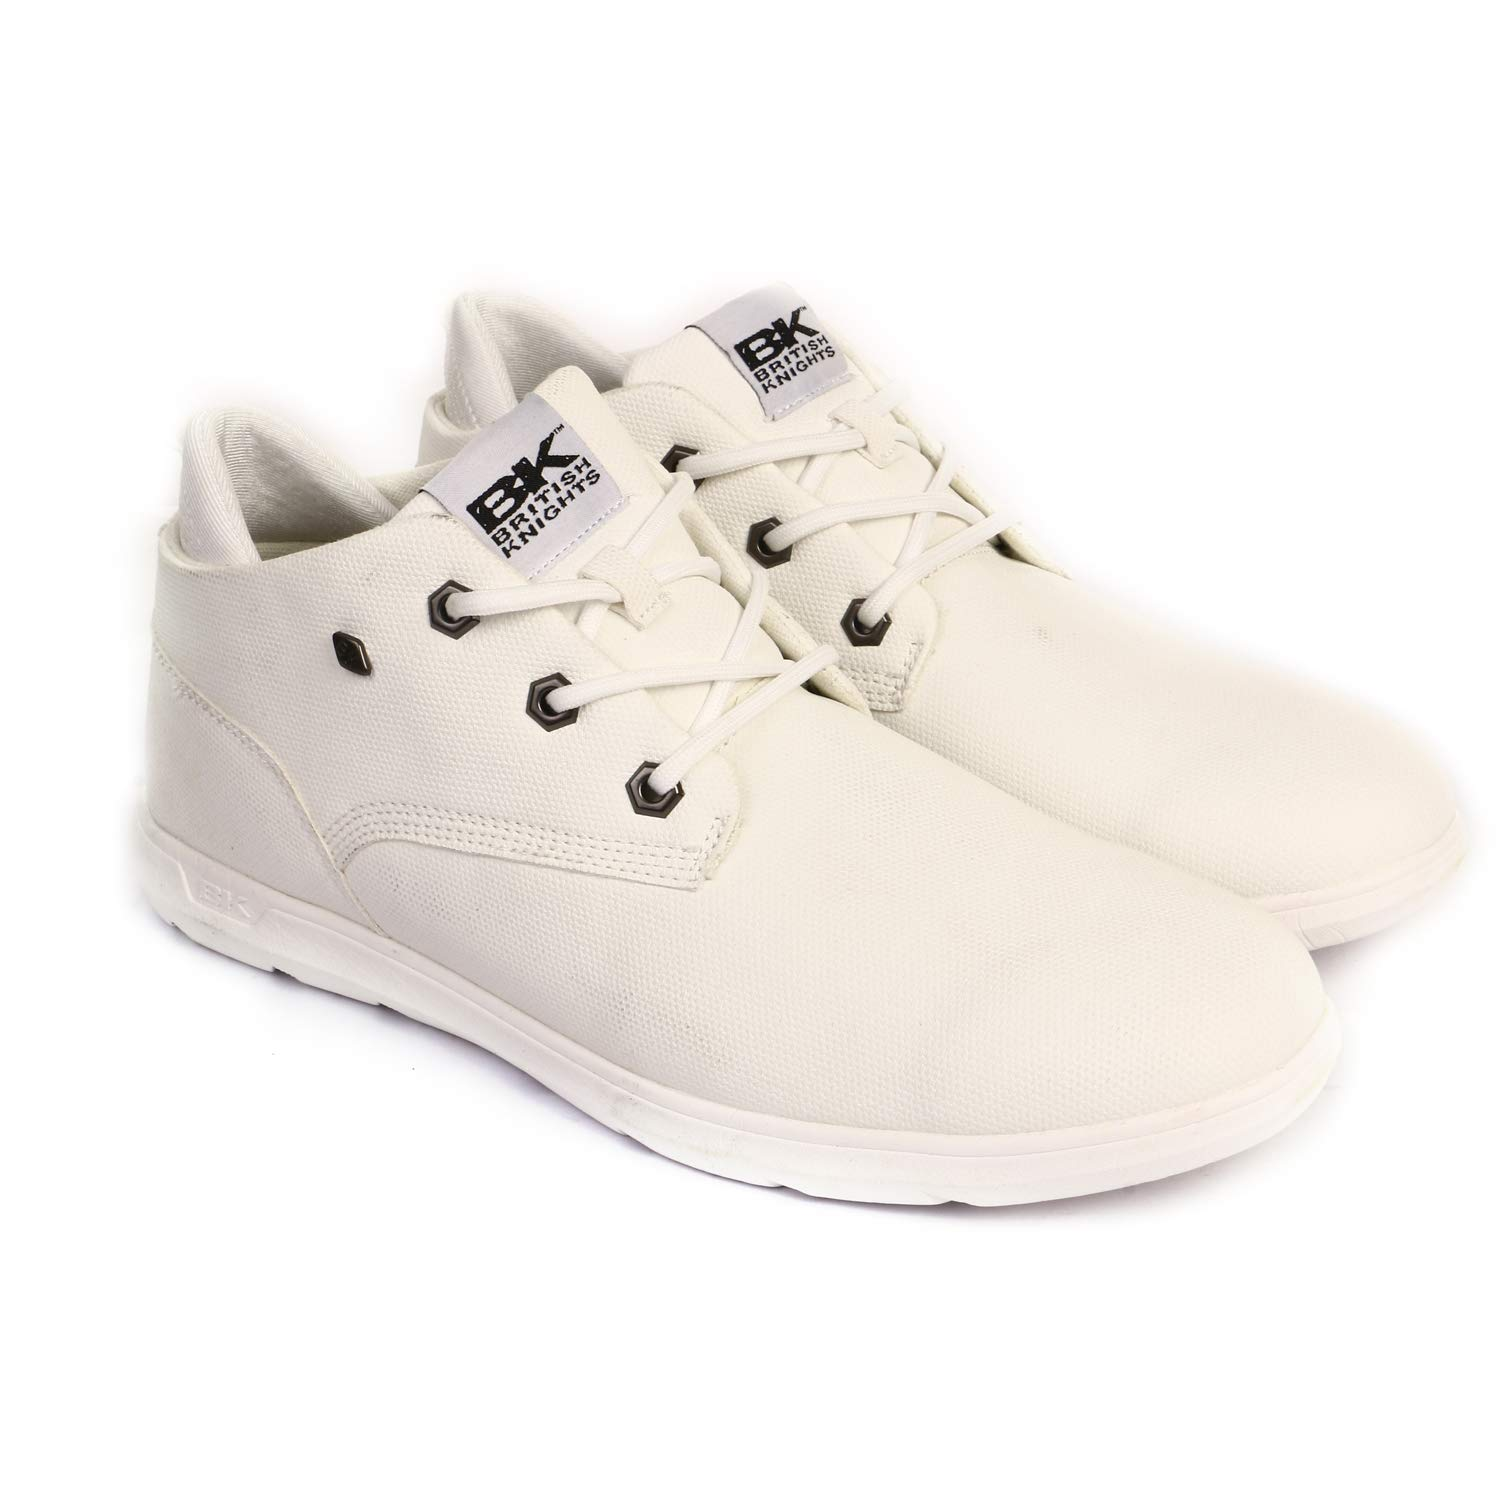 Calix Off White Sneaker Casual Shoes